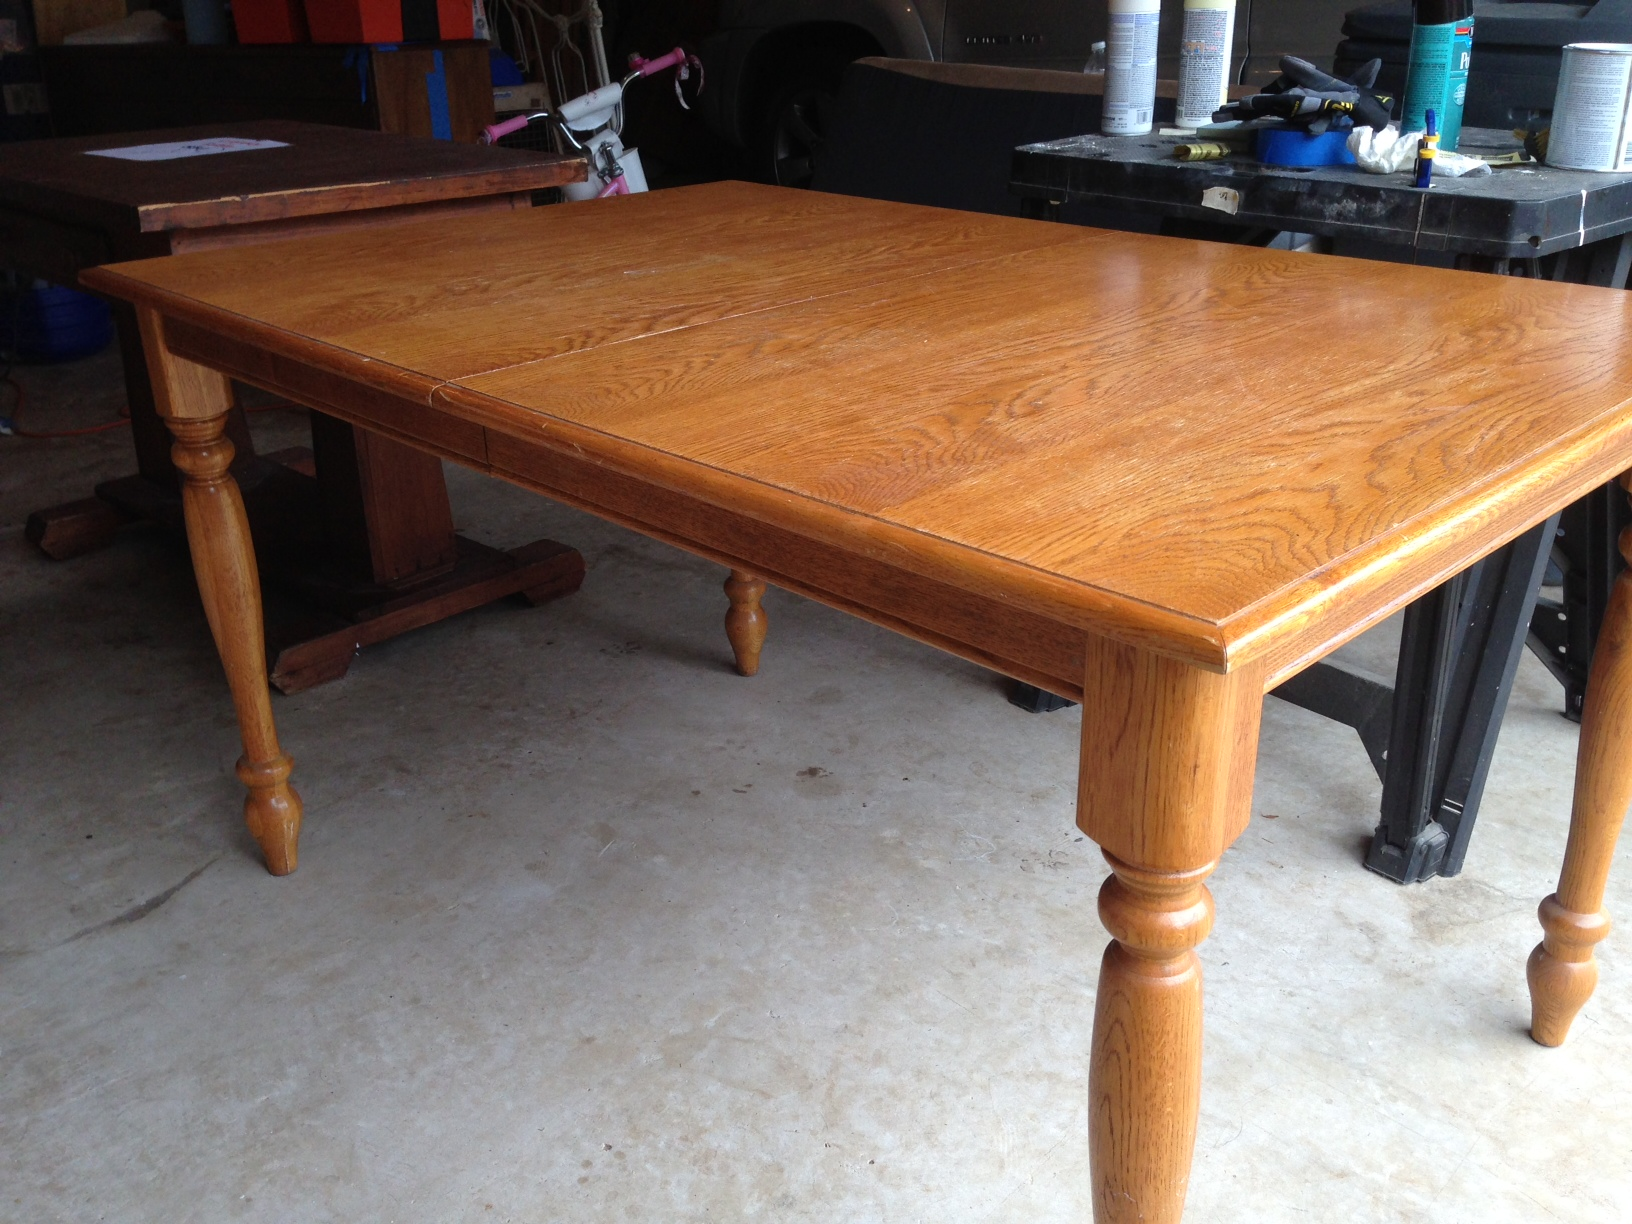 Refinished oak farmhouse table before after a nester 39 s nest - Refinishing a kitchen table ...